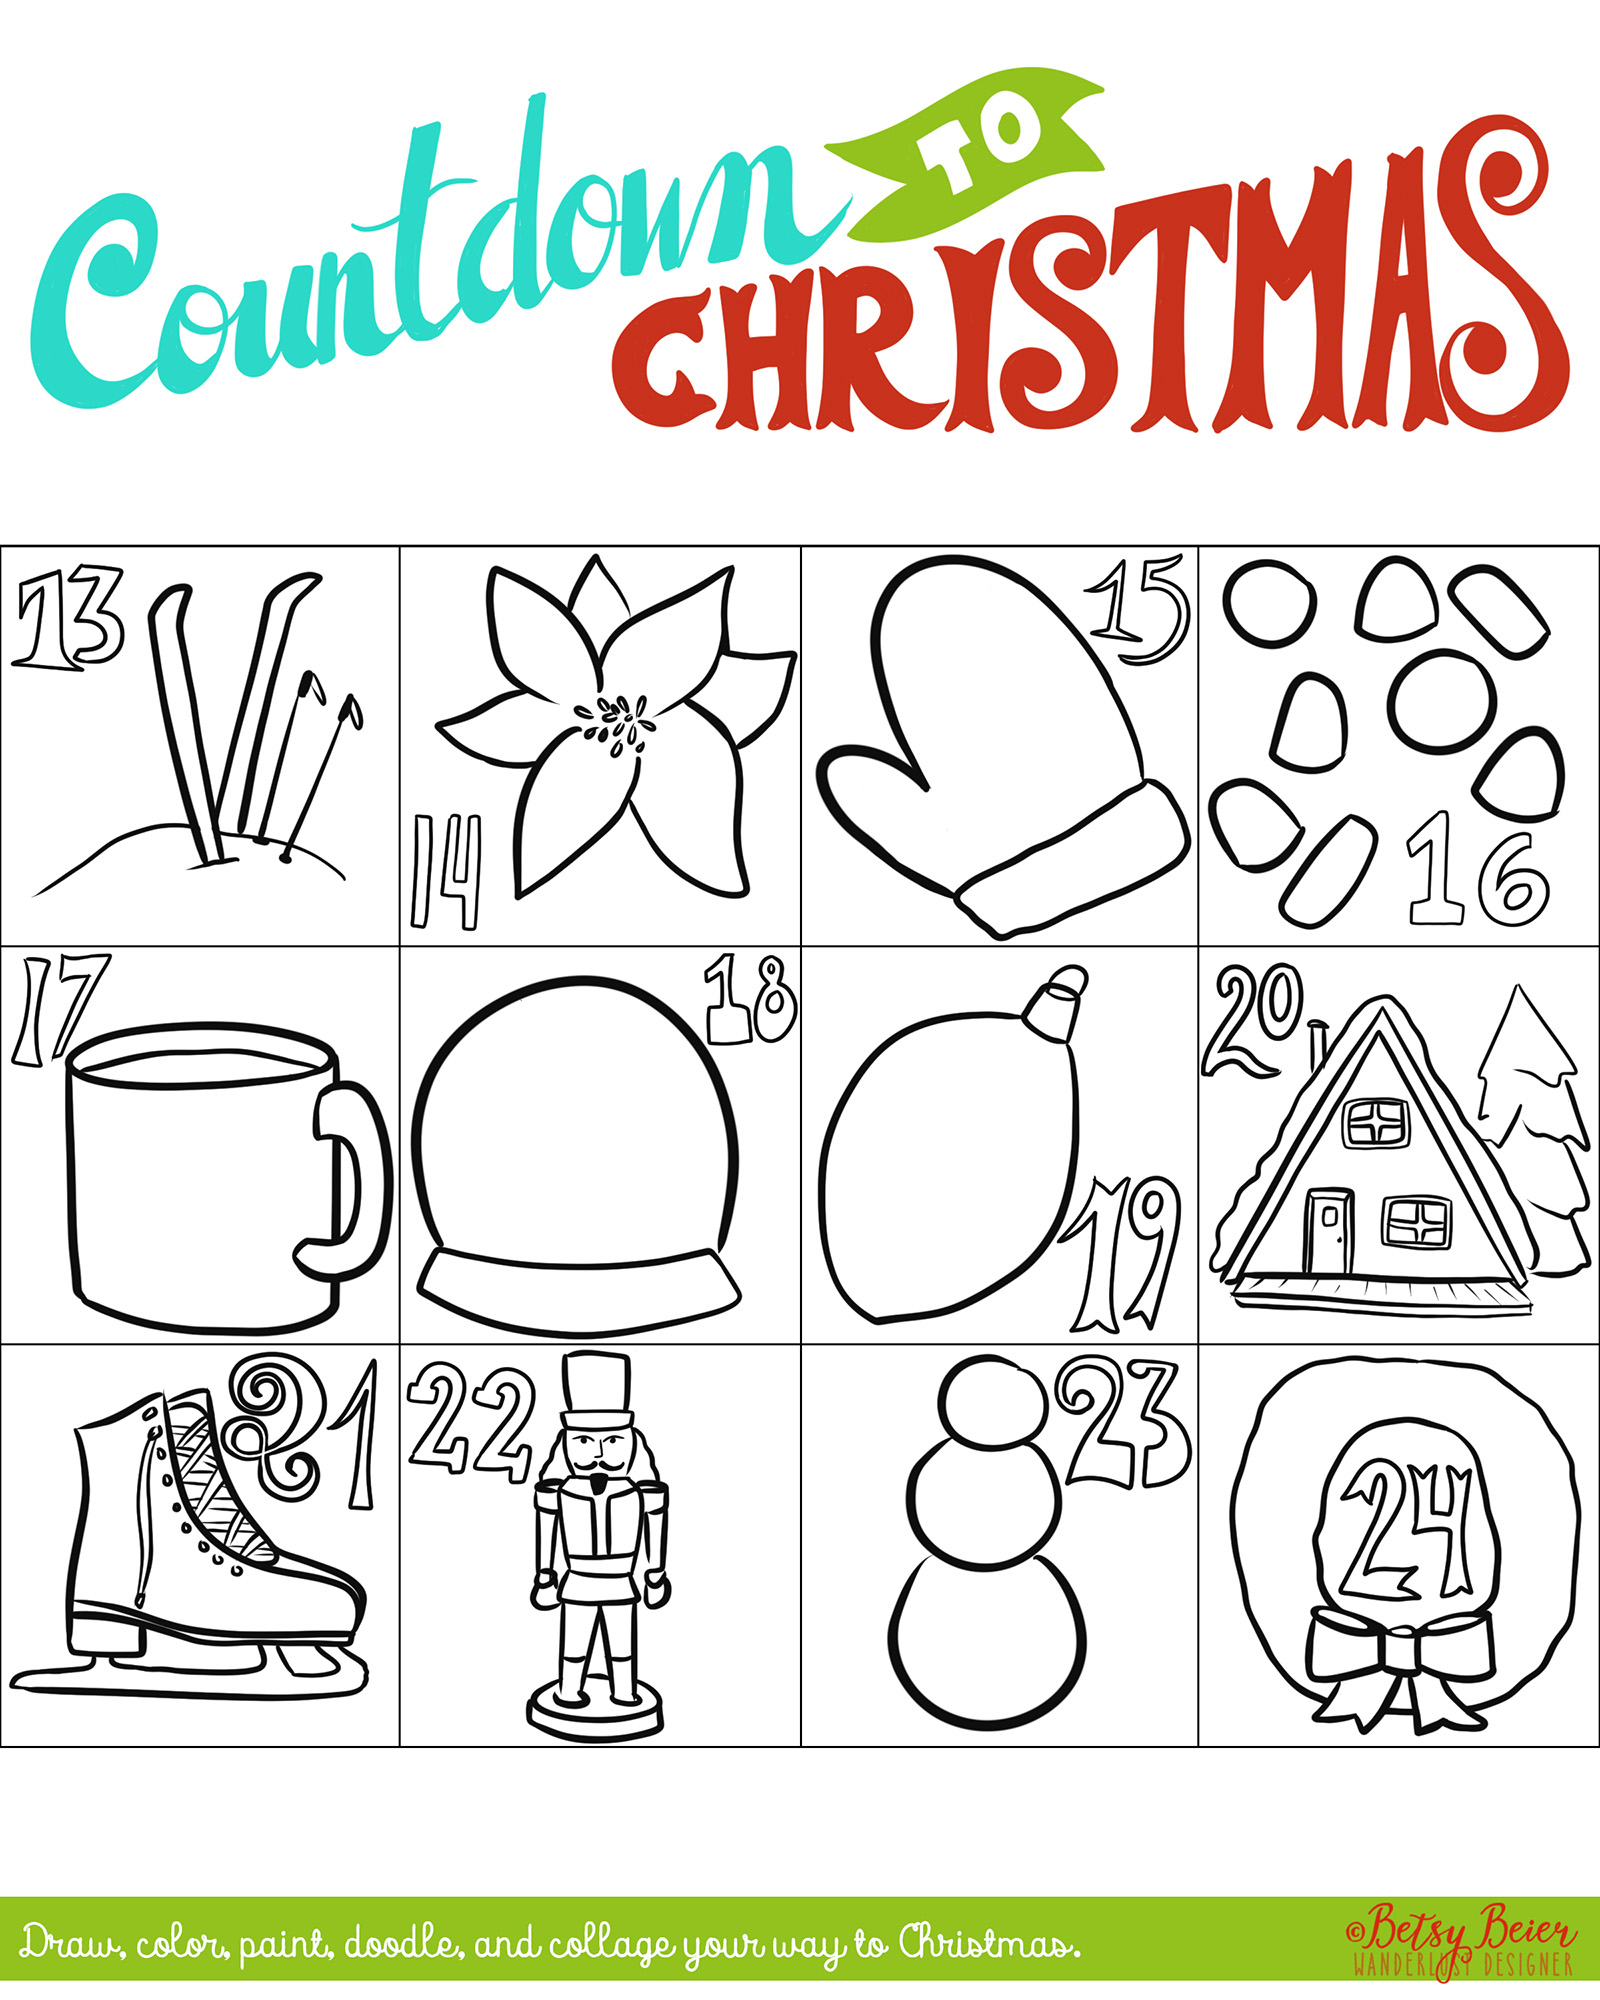 Free Printable Countdown to Christmas Art Project - Days 13-24 by Betsy Beier